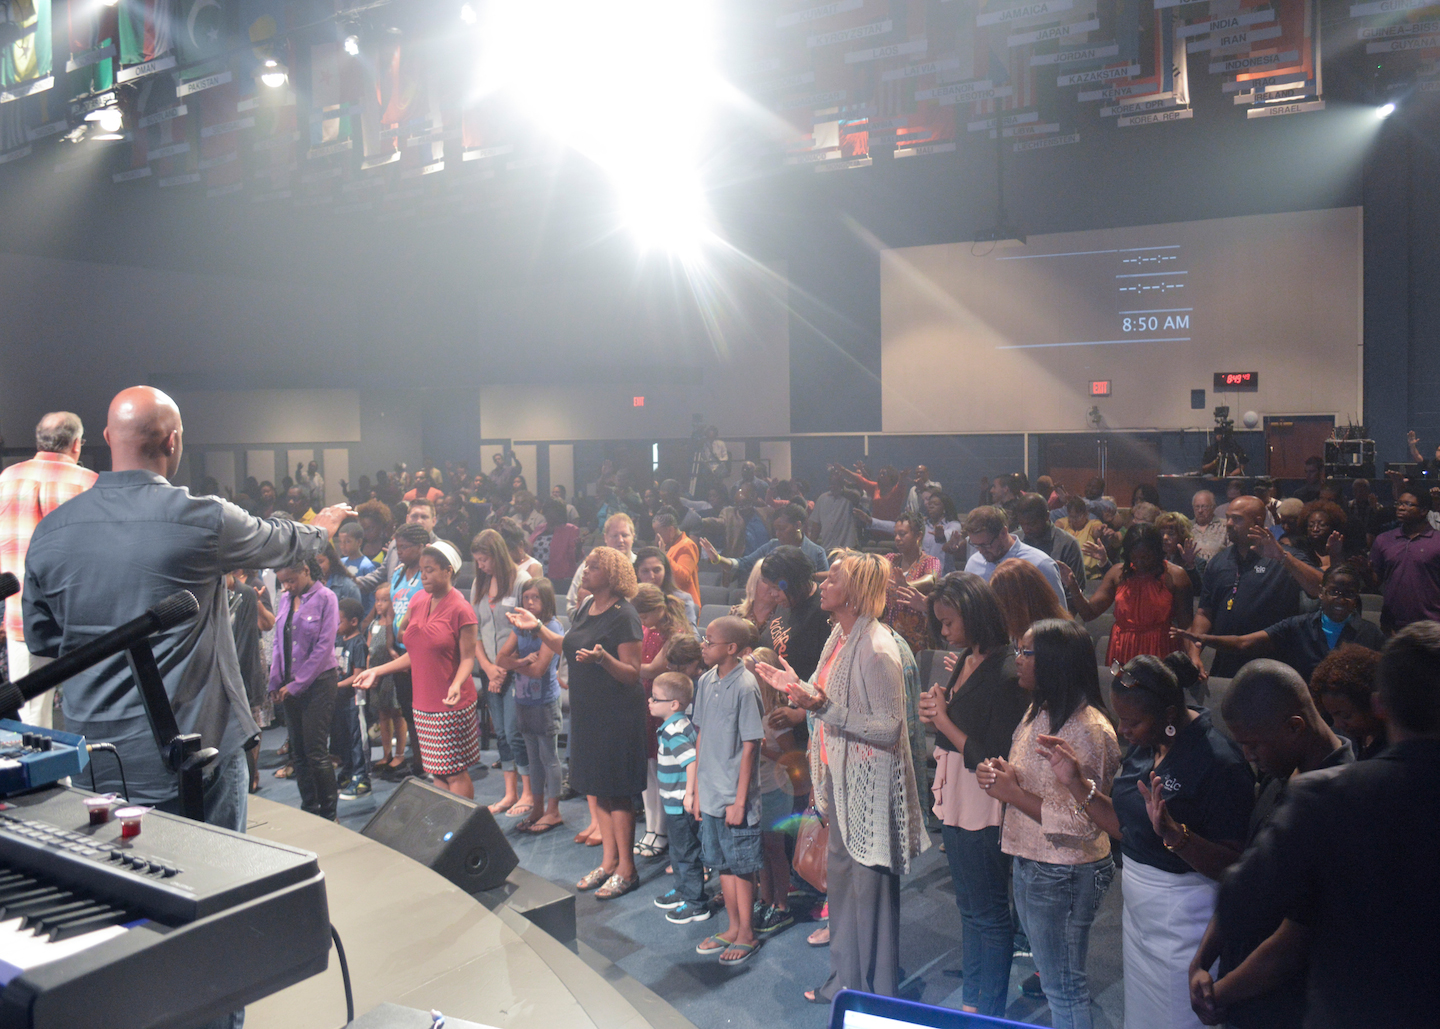 this pic was at the 8:30 service, by far the smallest number in the back-to-school prayer.  We couldn't fit them all into the altar area at the next 2 services!